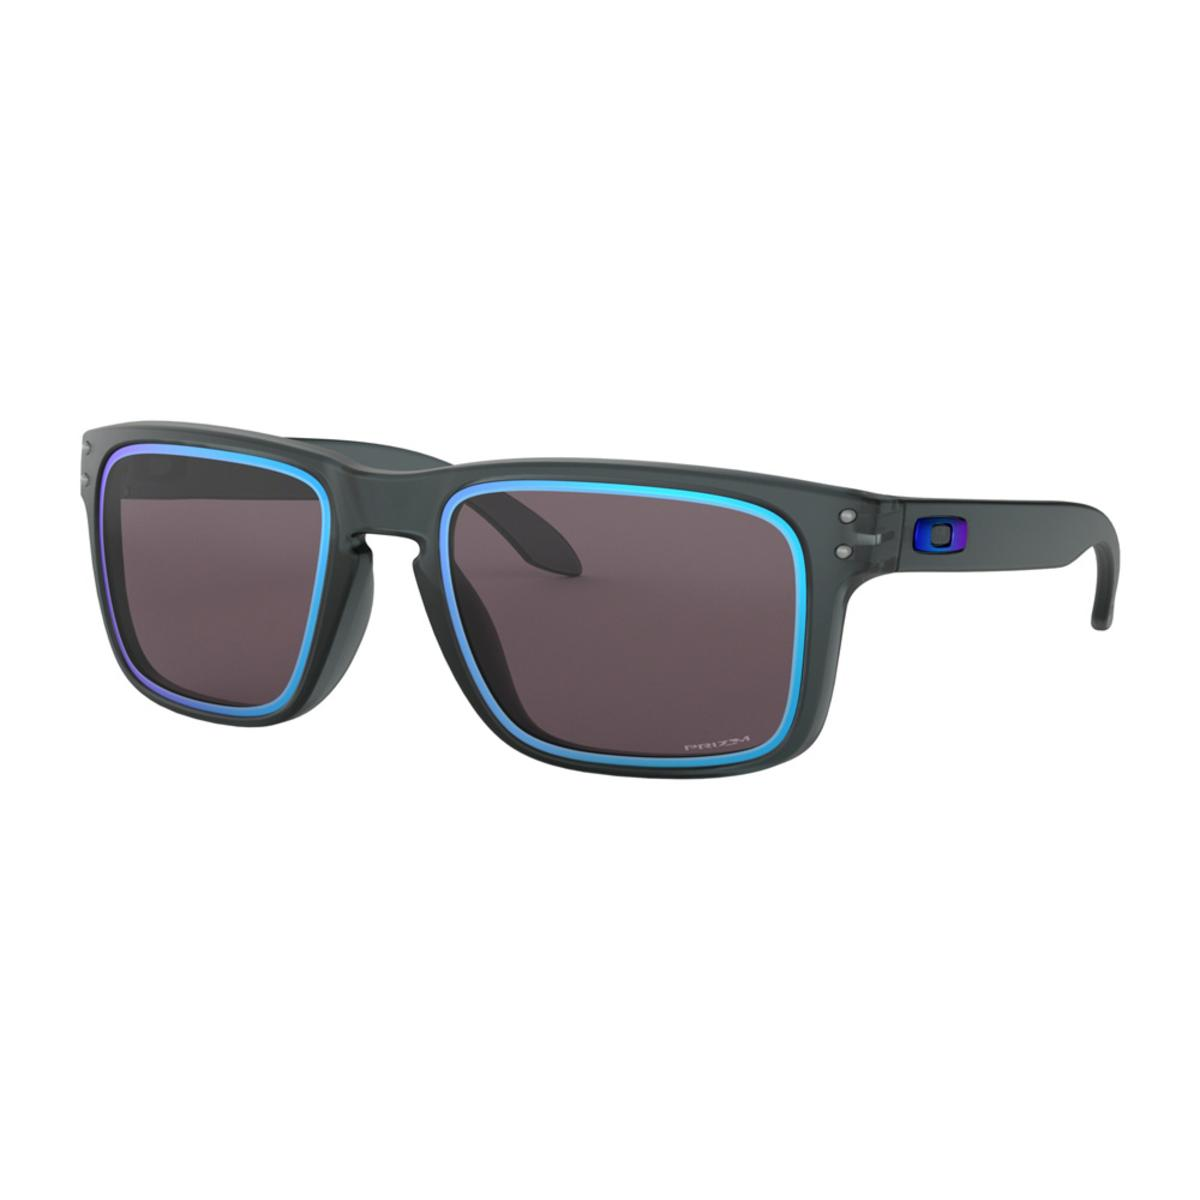 88d286da8f Oakley Holbrook Fire and Ice Collection Matte Crystal Black Sunglasses  w Prizm Grey - The Warming Store